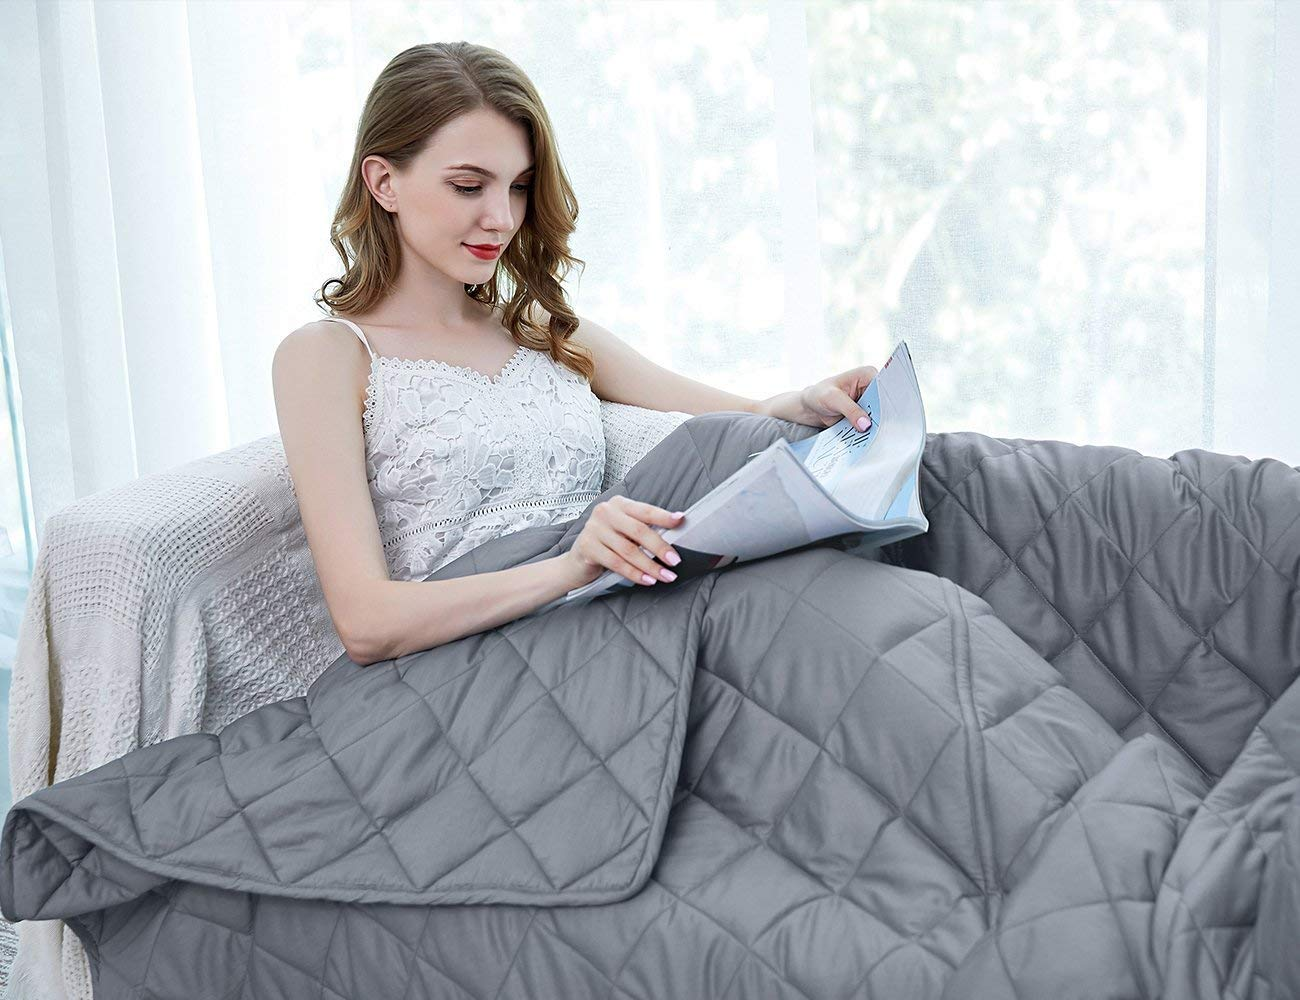 Find Comfort with a Weighted Blanket